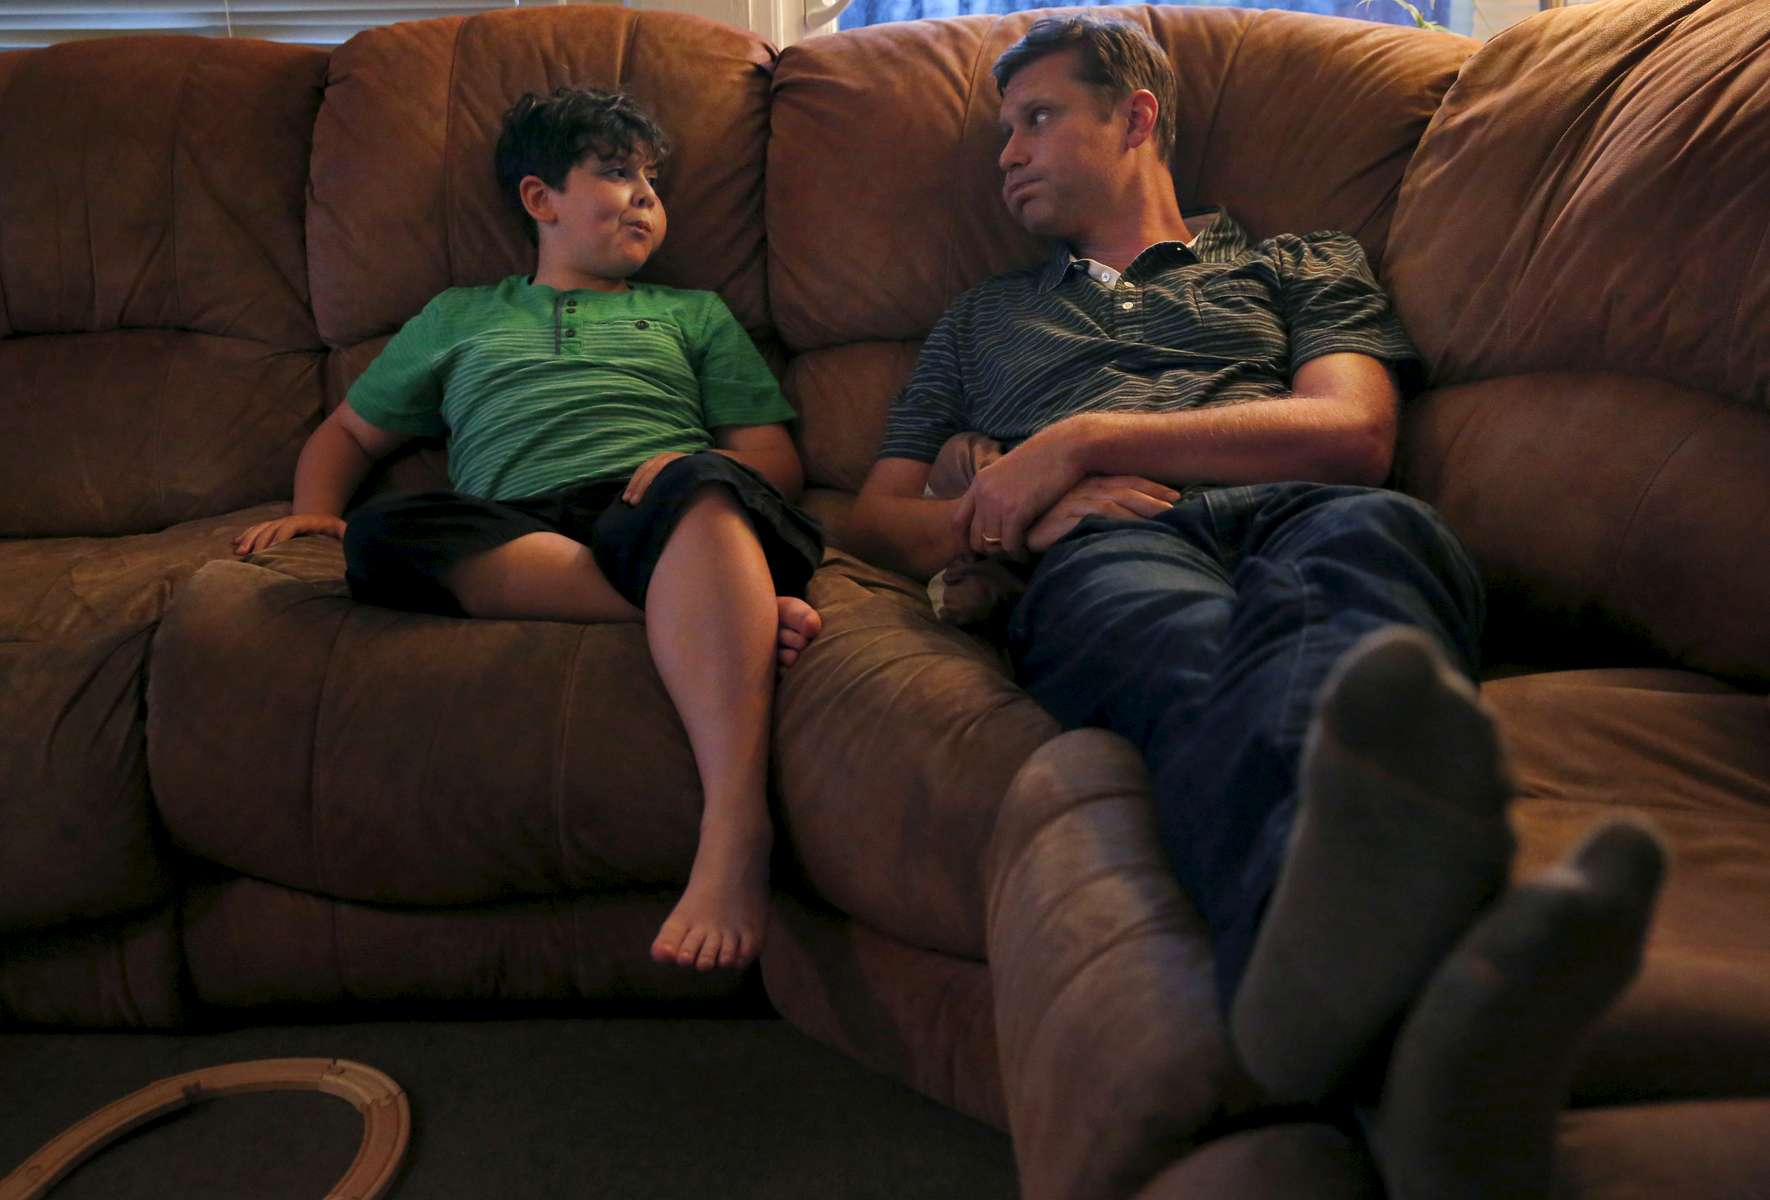 James Kaplan, 8, and his father Ben Kaplan make faces at each other in the living room in the evening Oct. 13, 2016 in Berkeley, Calif. Ben says James used to drop hints about who he was inside before he came out as transgender to his parents. Ben says James even told him he thought there was a boy inside of himself, but Ben didn't get the hint until James came out to a friend and a teacher at school.